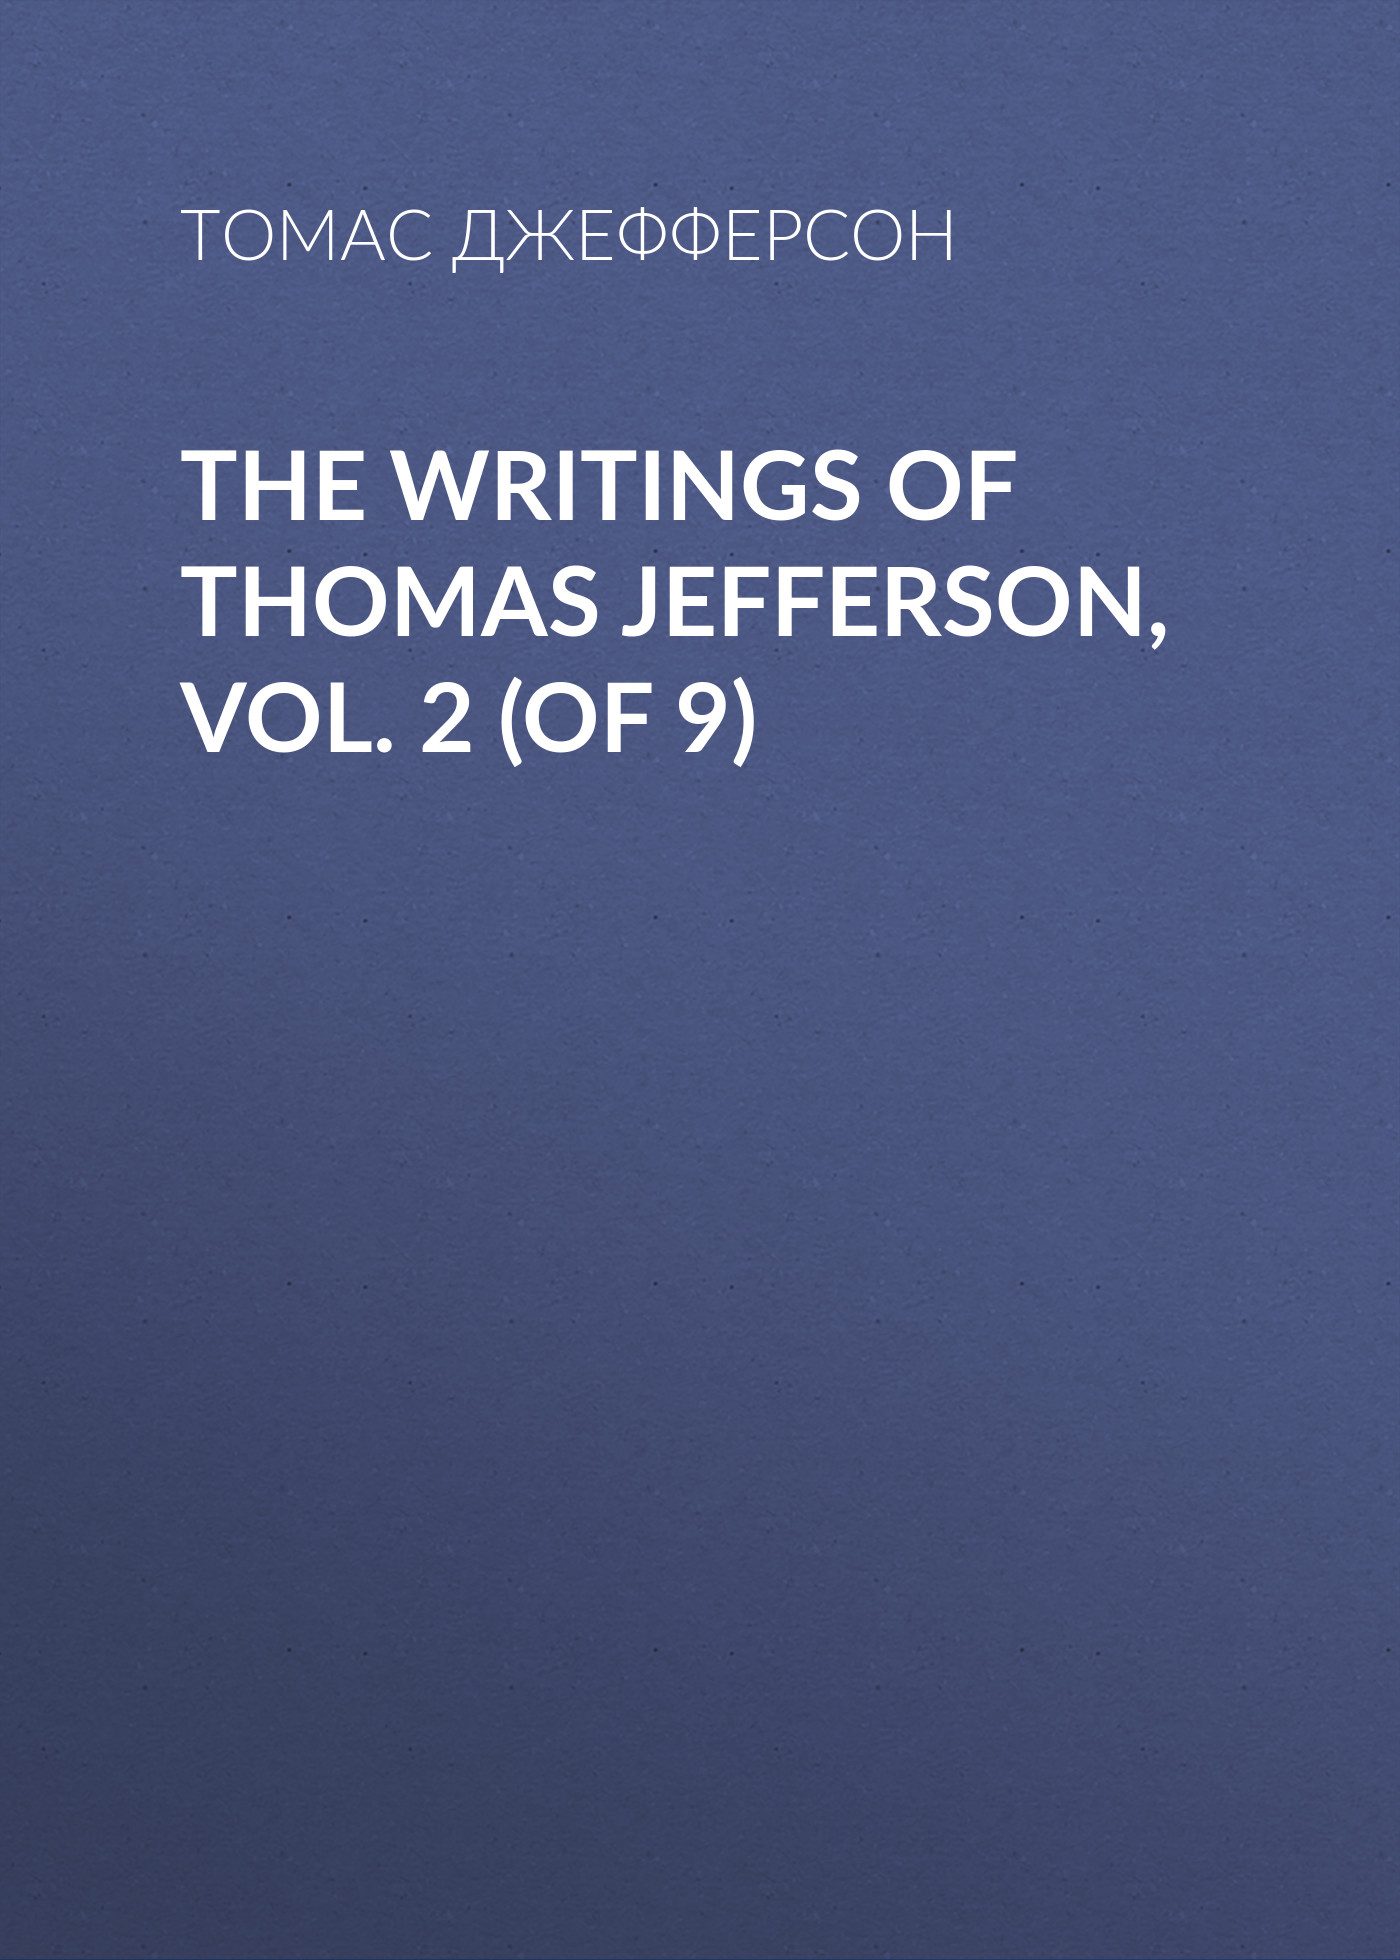 Томас Джефферсон The Writings of Thomas Jefferson, Vol. 2 (of 9) jefferson starship the definitive concert